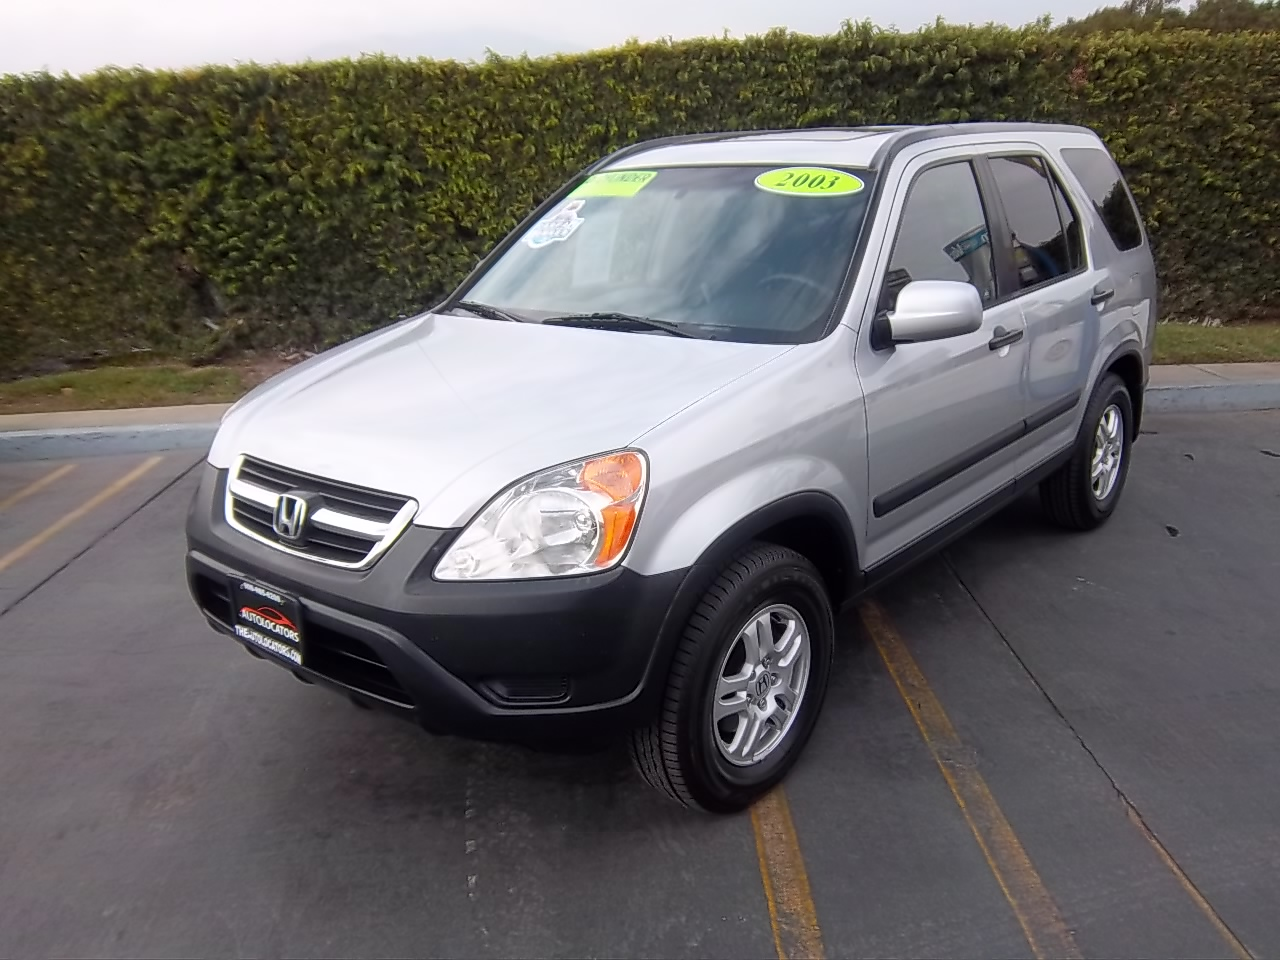 Honda 2003 honda crv 2003 toupeenseen for Motor warranty services of north america